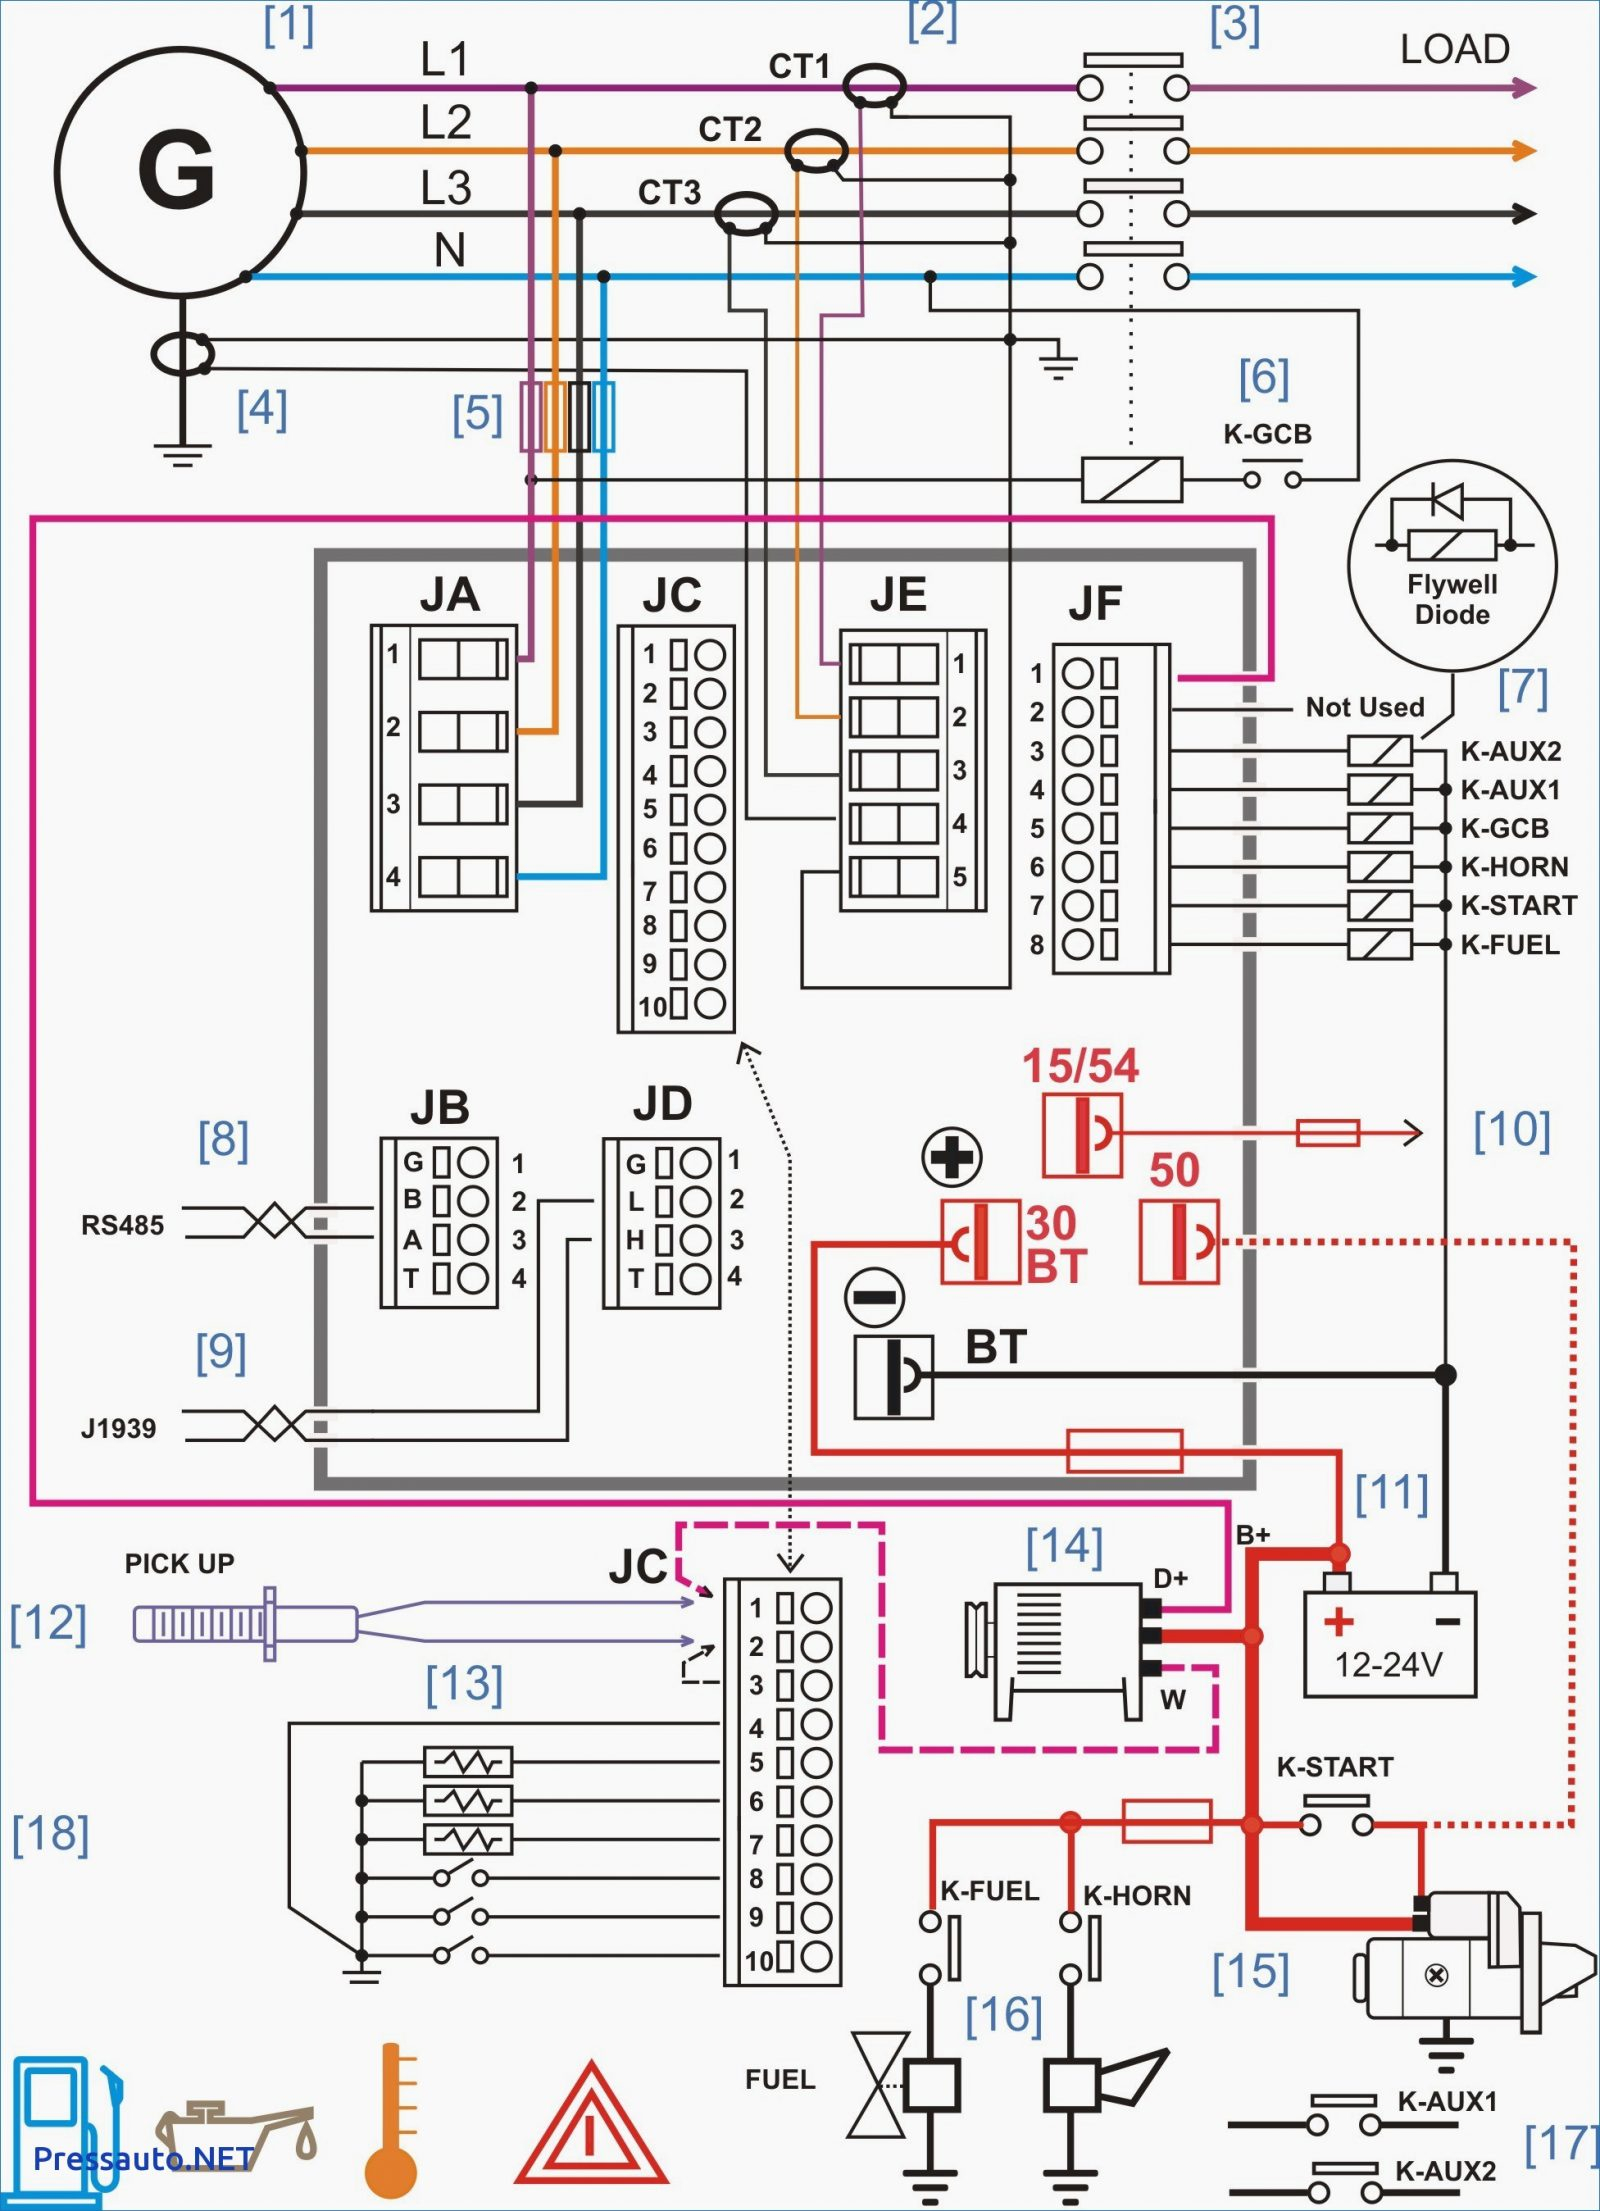 asco 7000 transfer switch wiring diagrams wiring diagram write rh 2 kitg bolonka zwetna von der laisbach de Residential Transfer Switch Wiring Diagram asco series 300 transfer switch wiring diagram